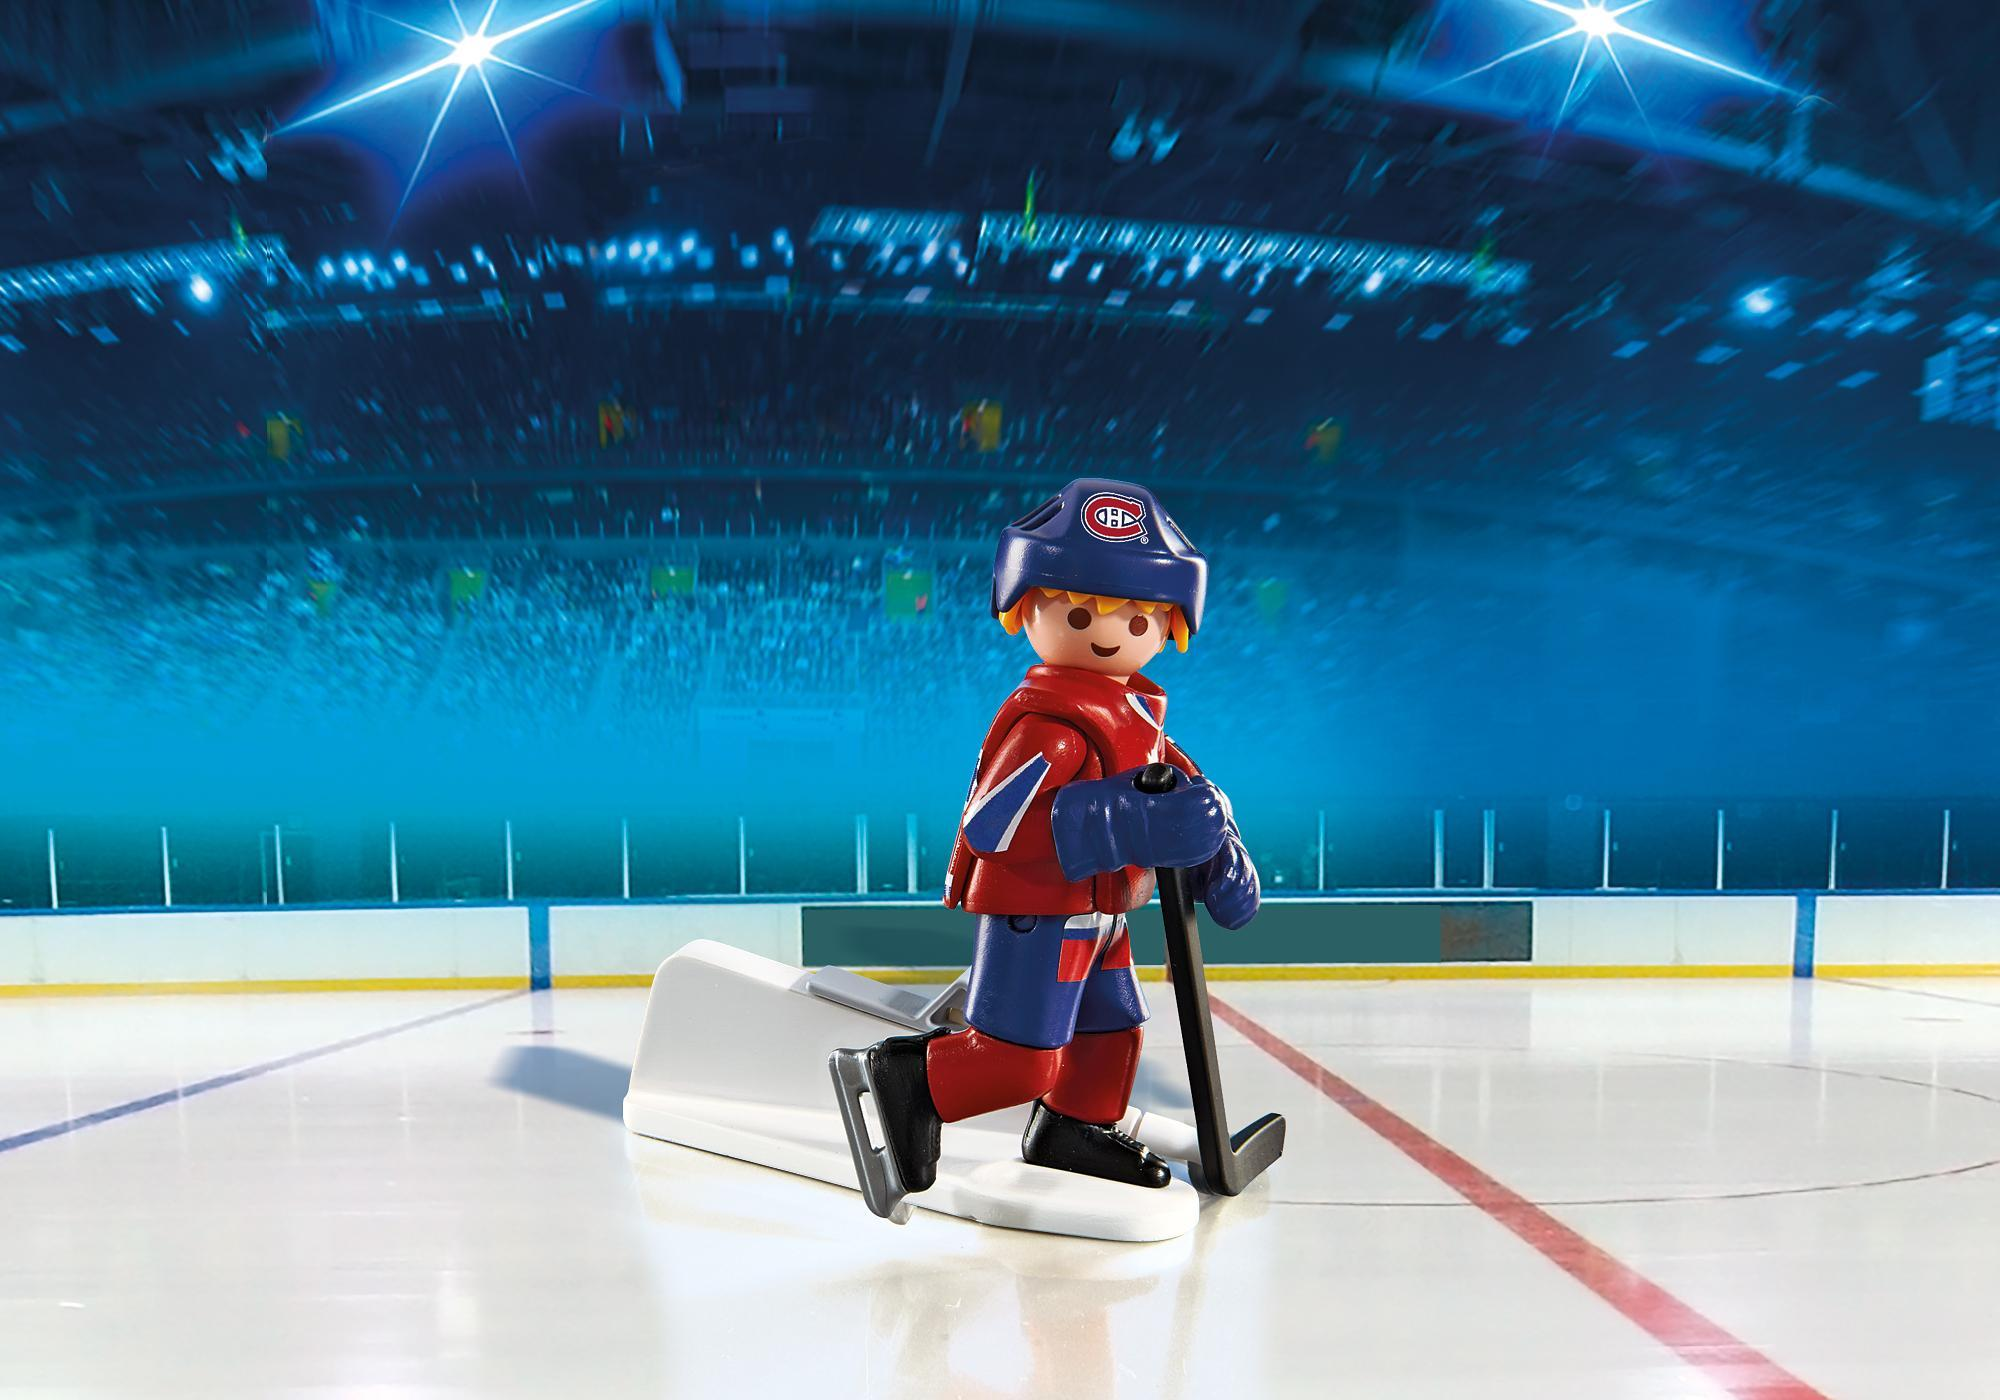 5079_product_detail/NHL™ Montreal Canadiens™ Player